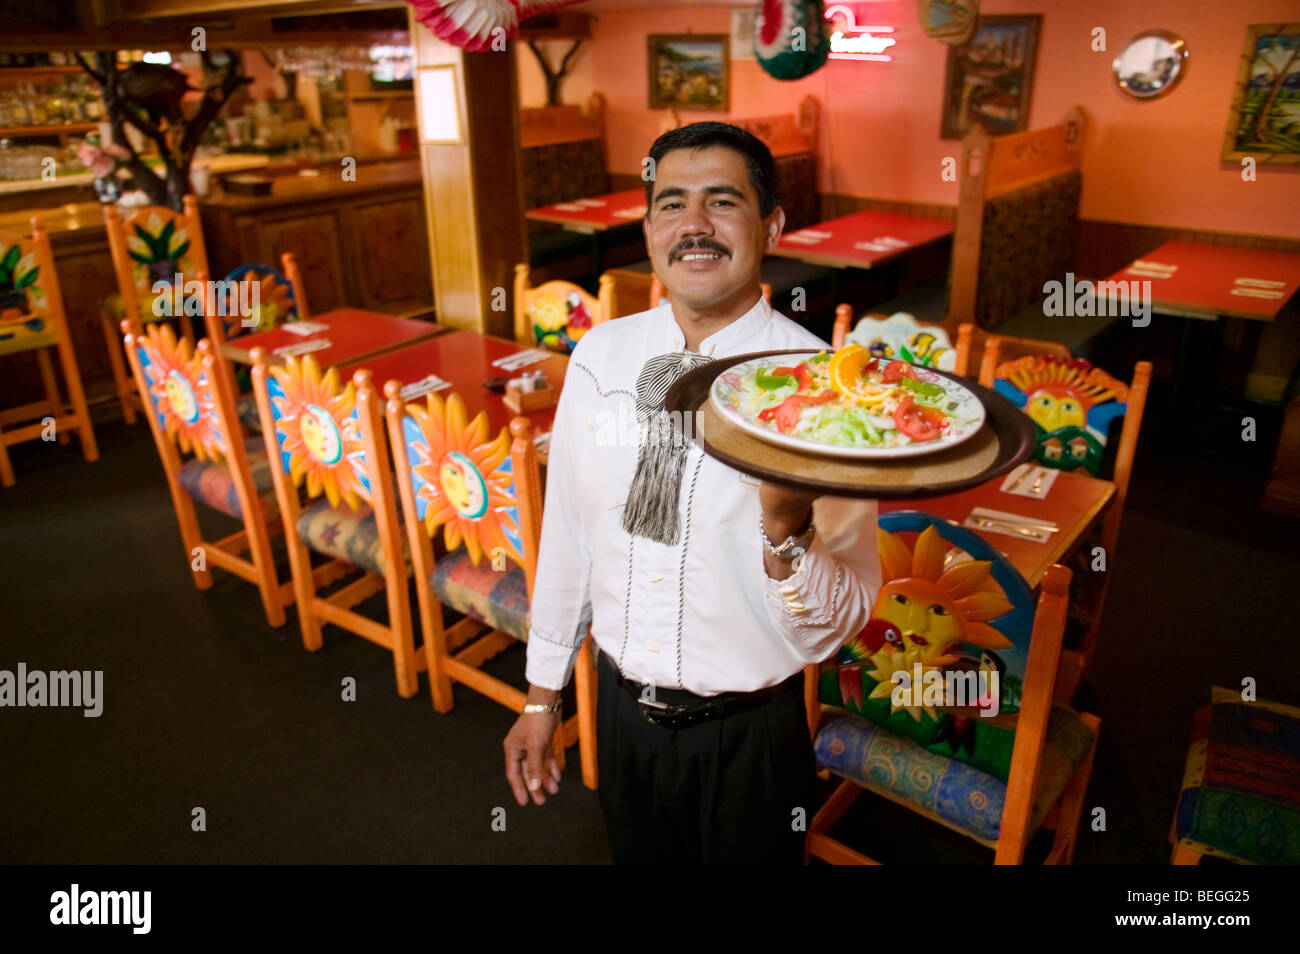 Male Mexican Waiter Holding A Tray Of Food In The Fiesta